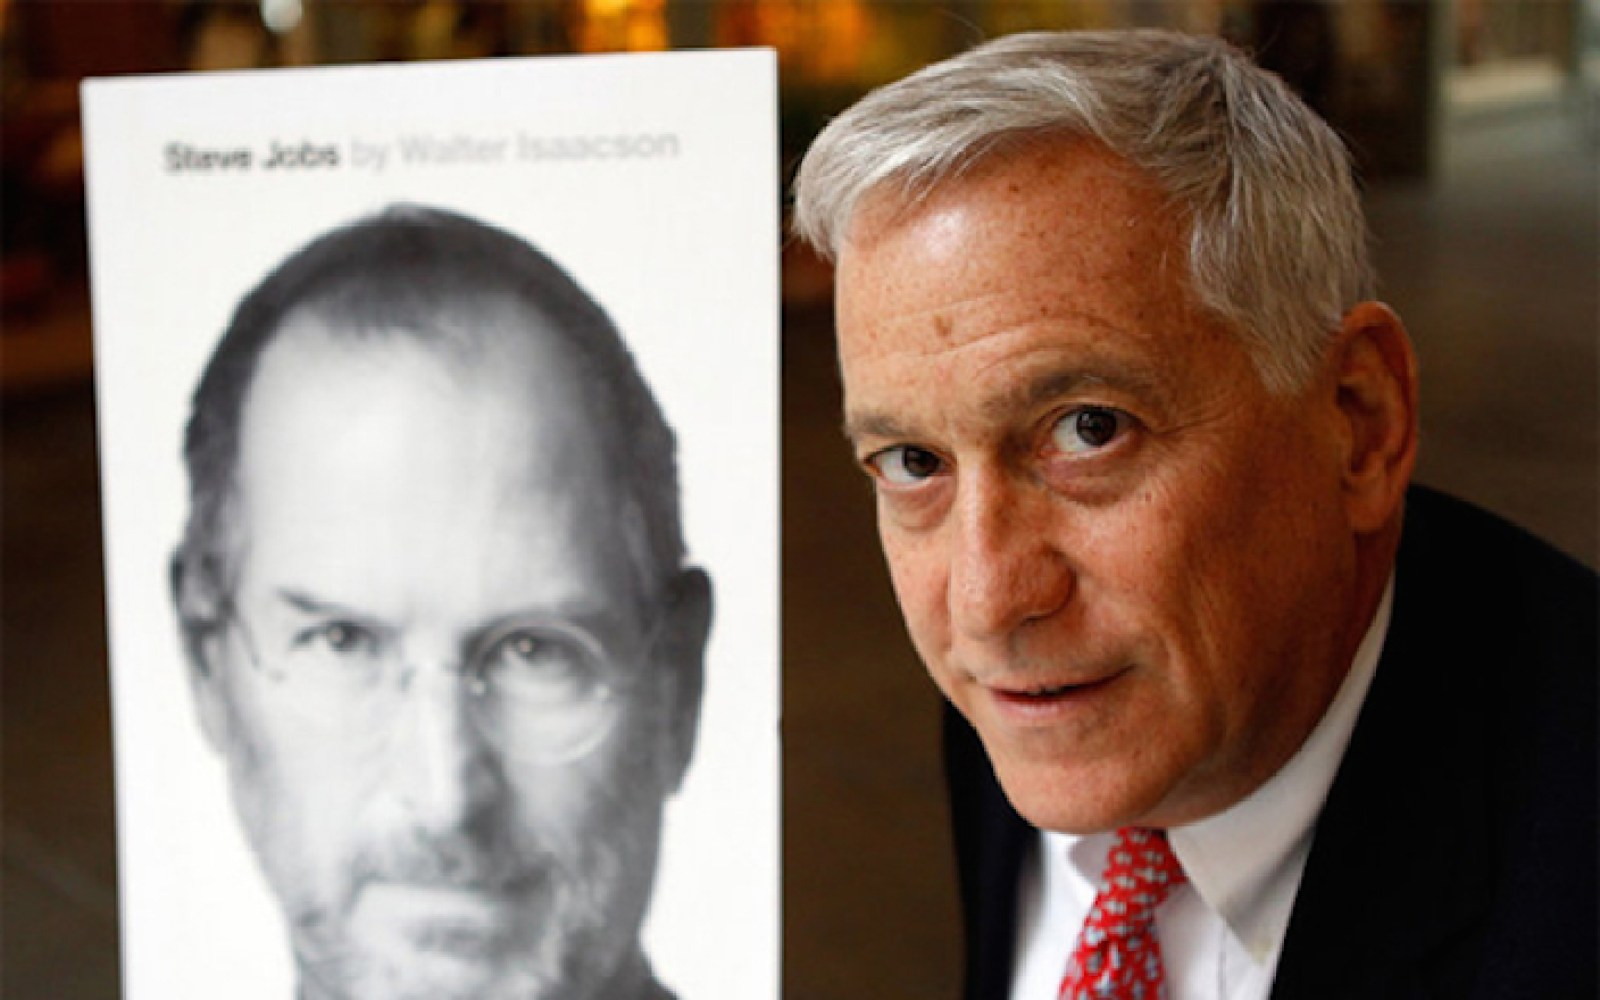 Jobs' biographer believes Beats purchase is about video, not headphones and music